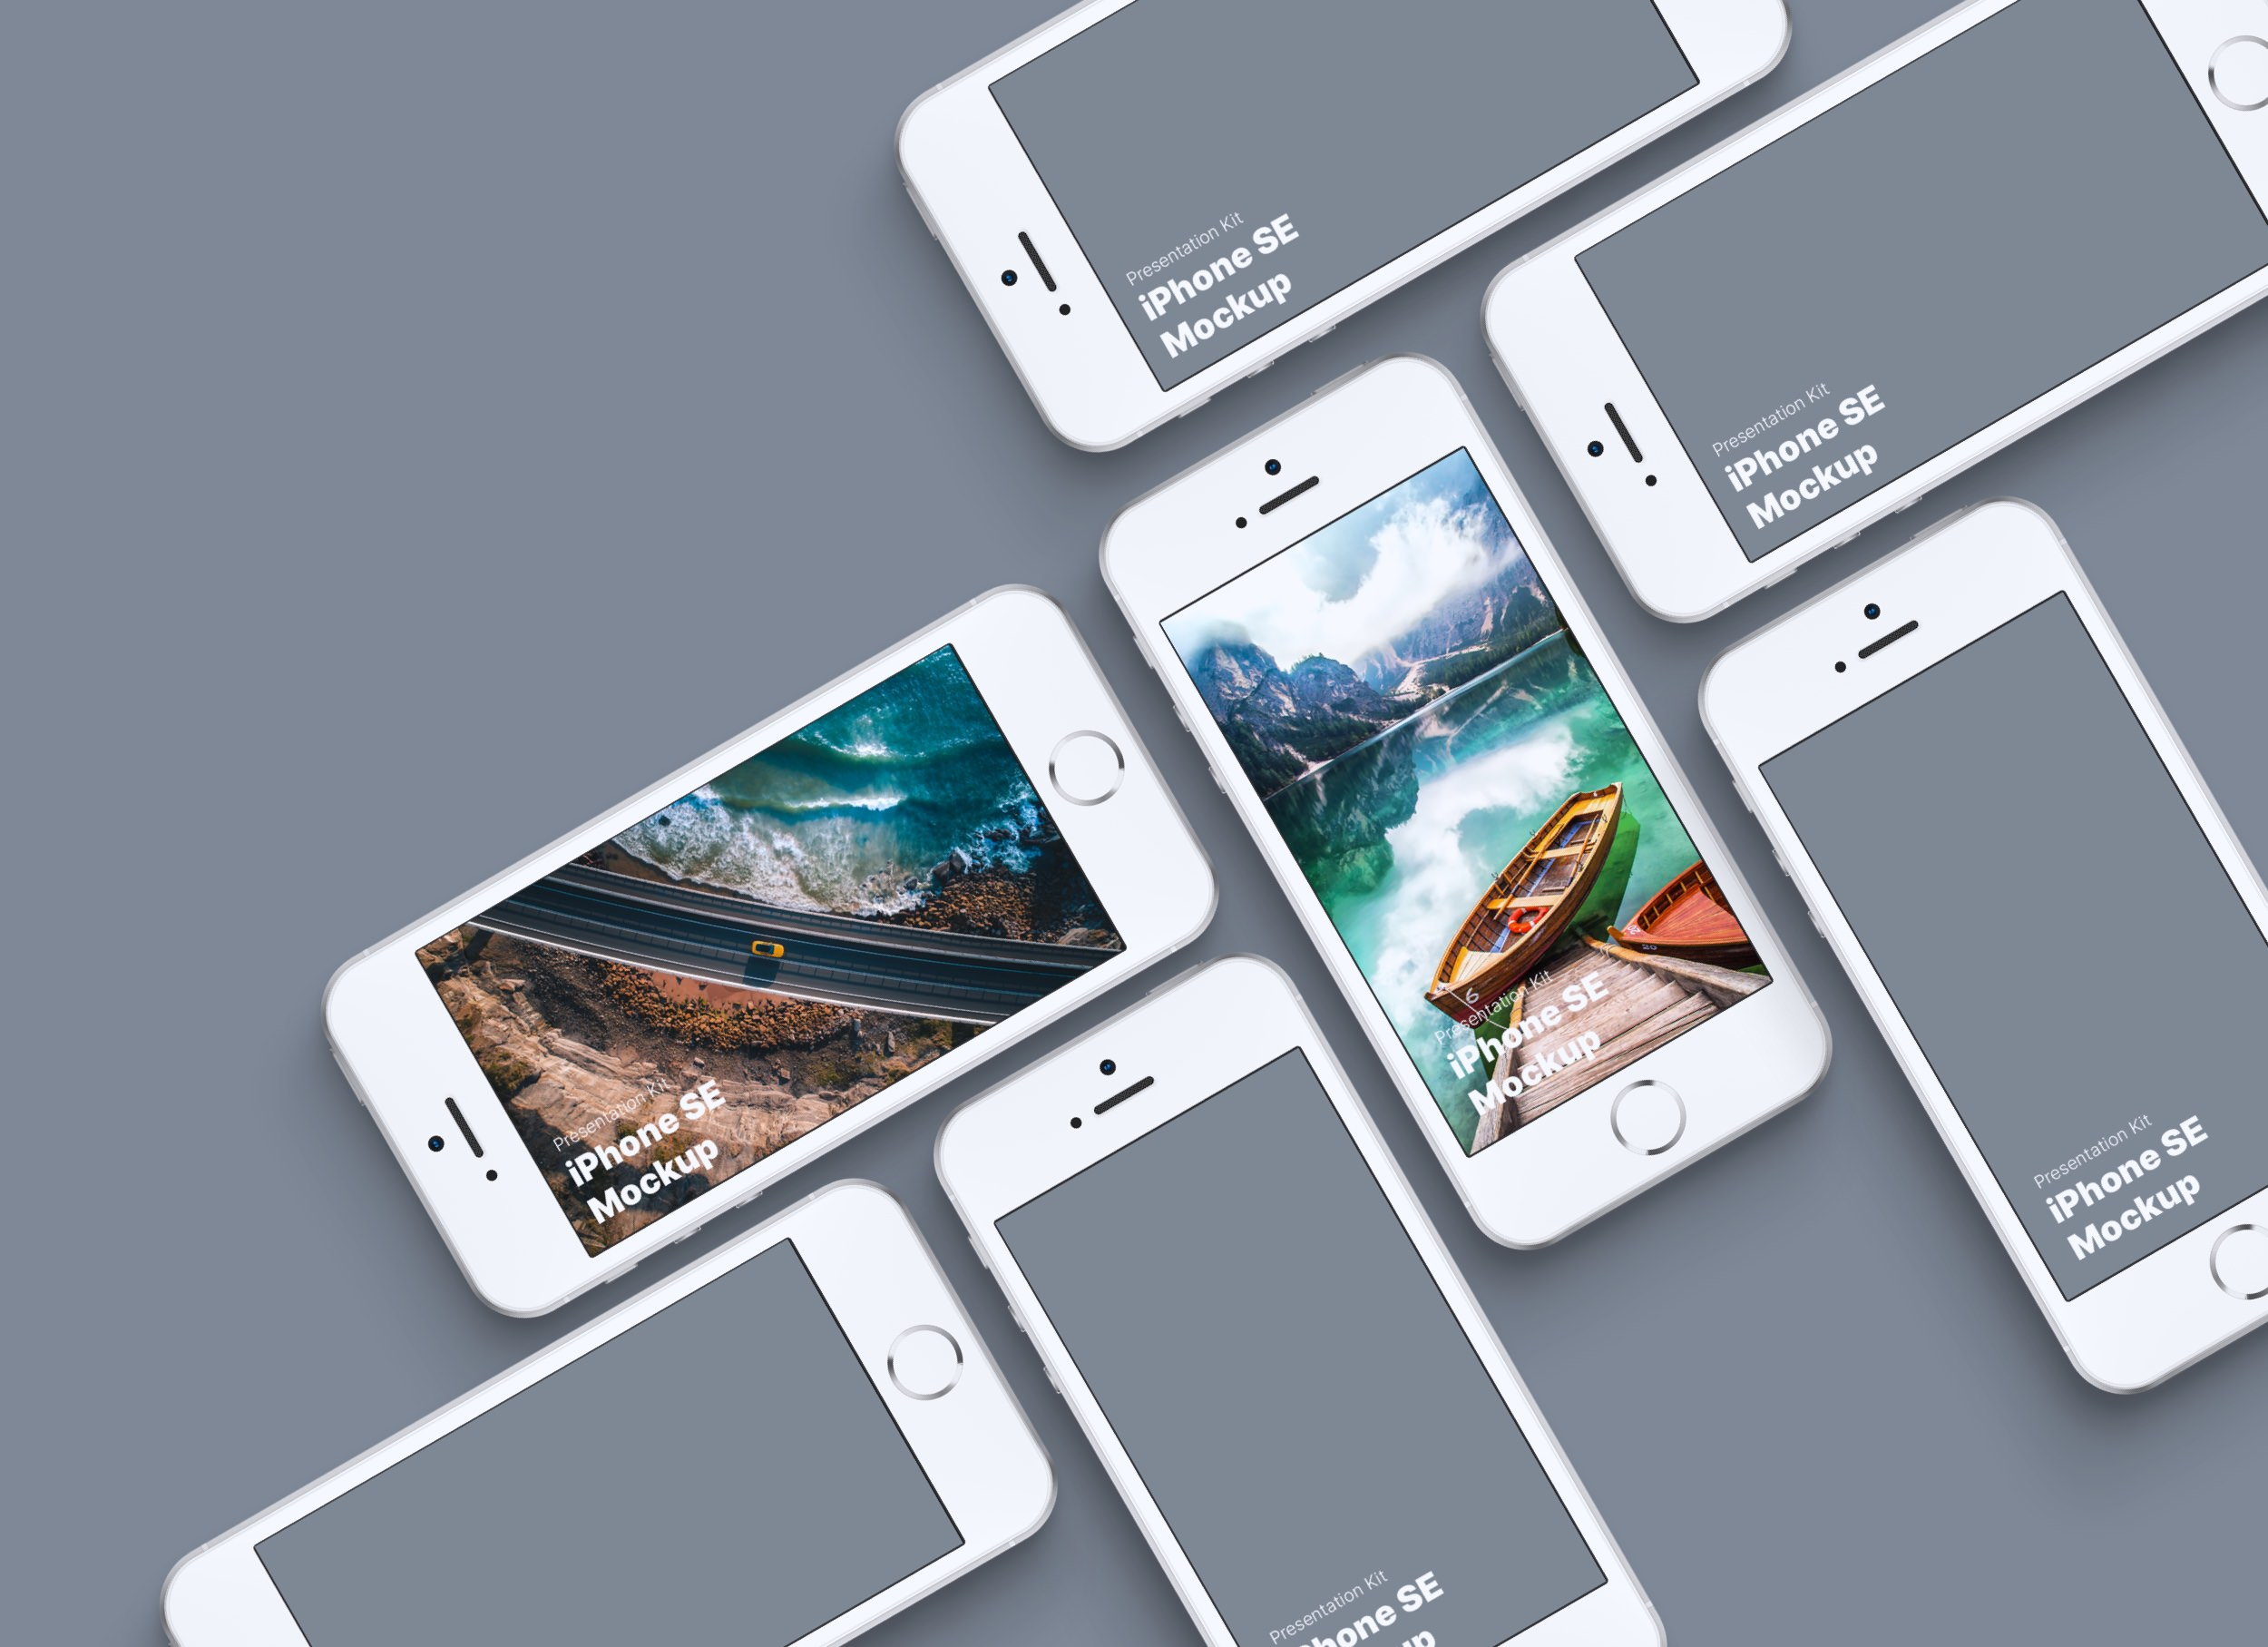 Download Apple iPhone SE Mockup for Sketch, Photoshop and Figma